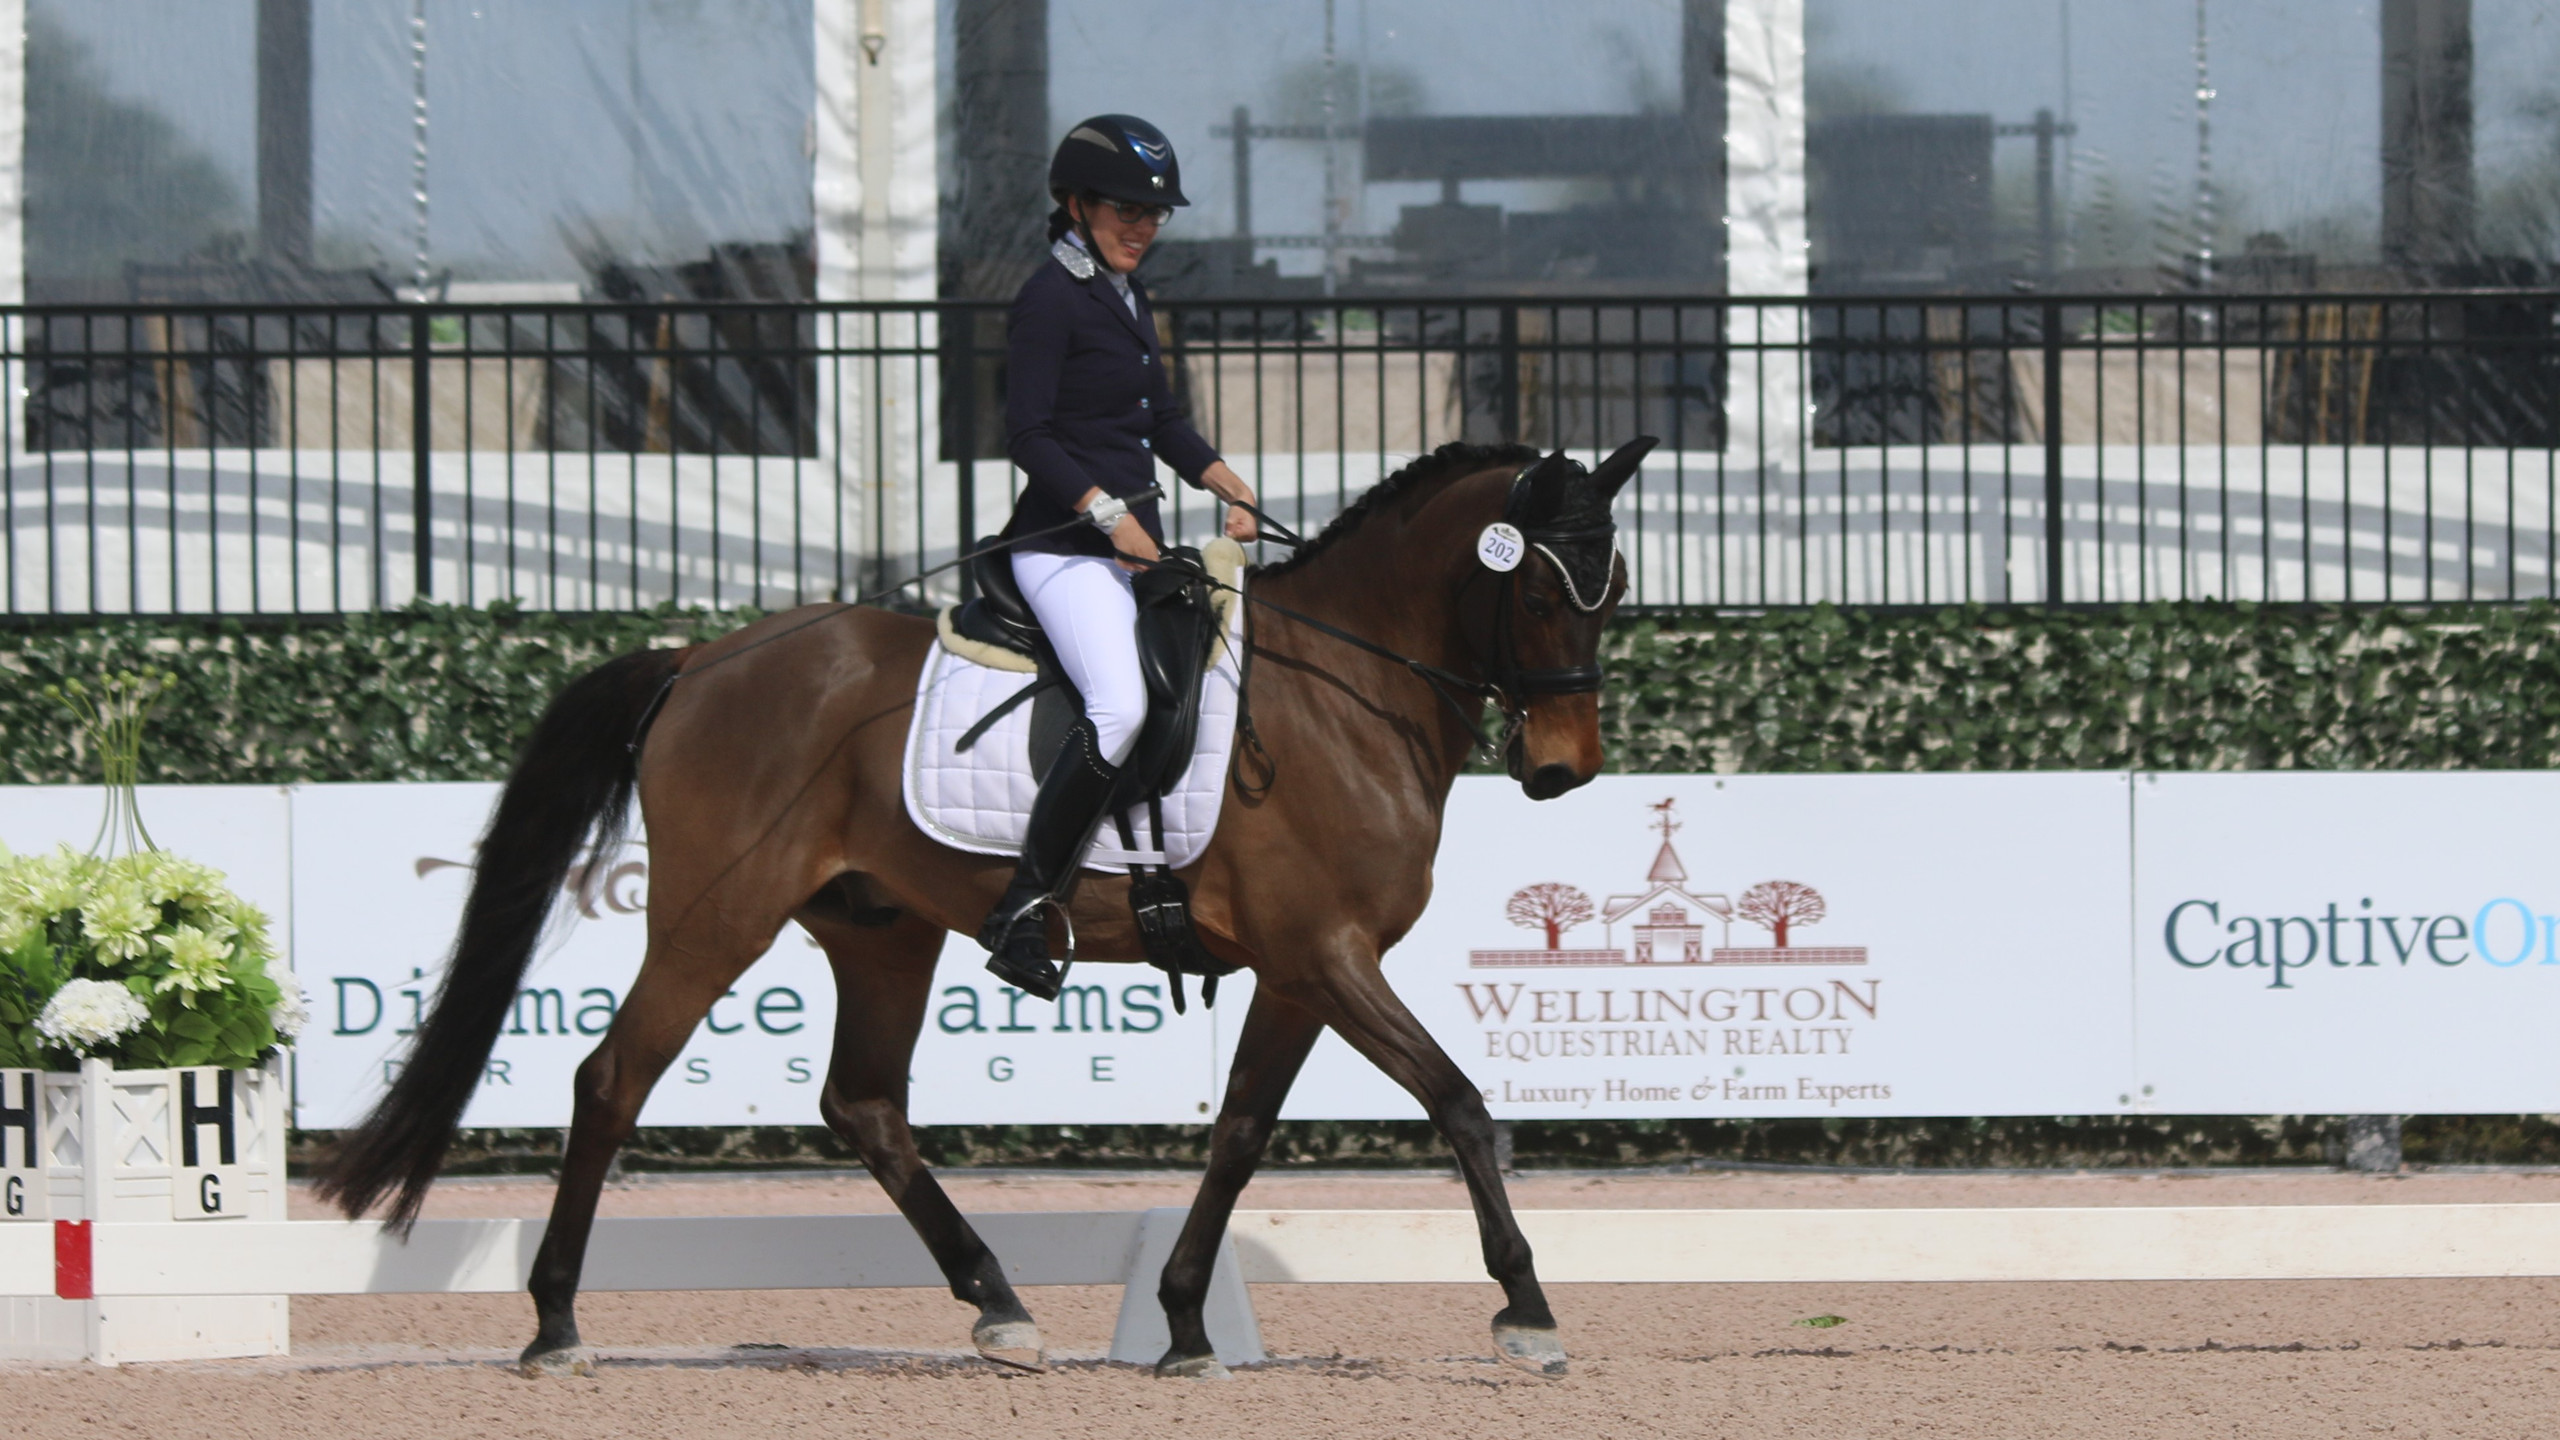 Girl in wheelchair riding dressage horse. Paradressage and paraequestrian.